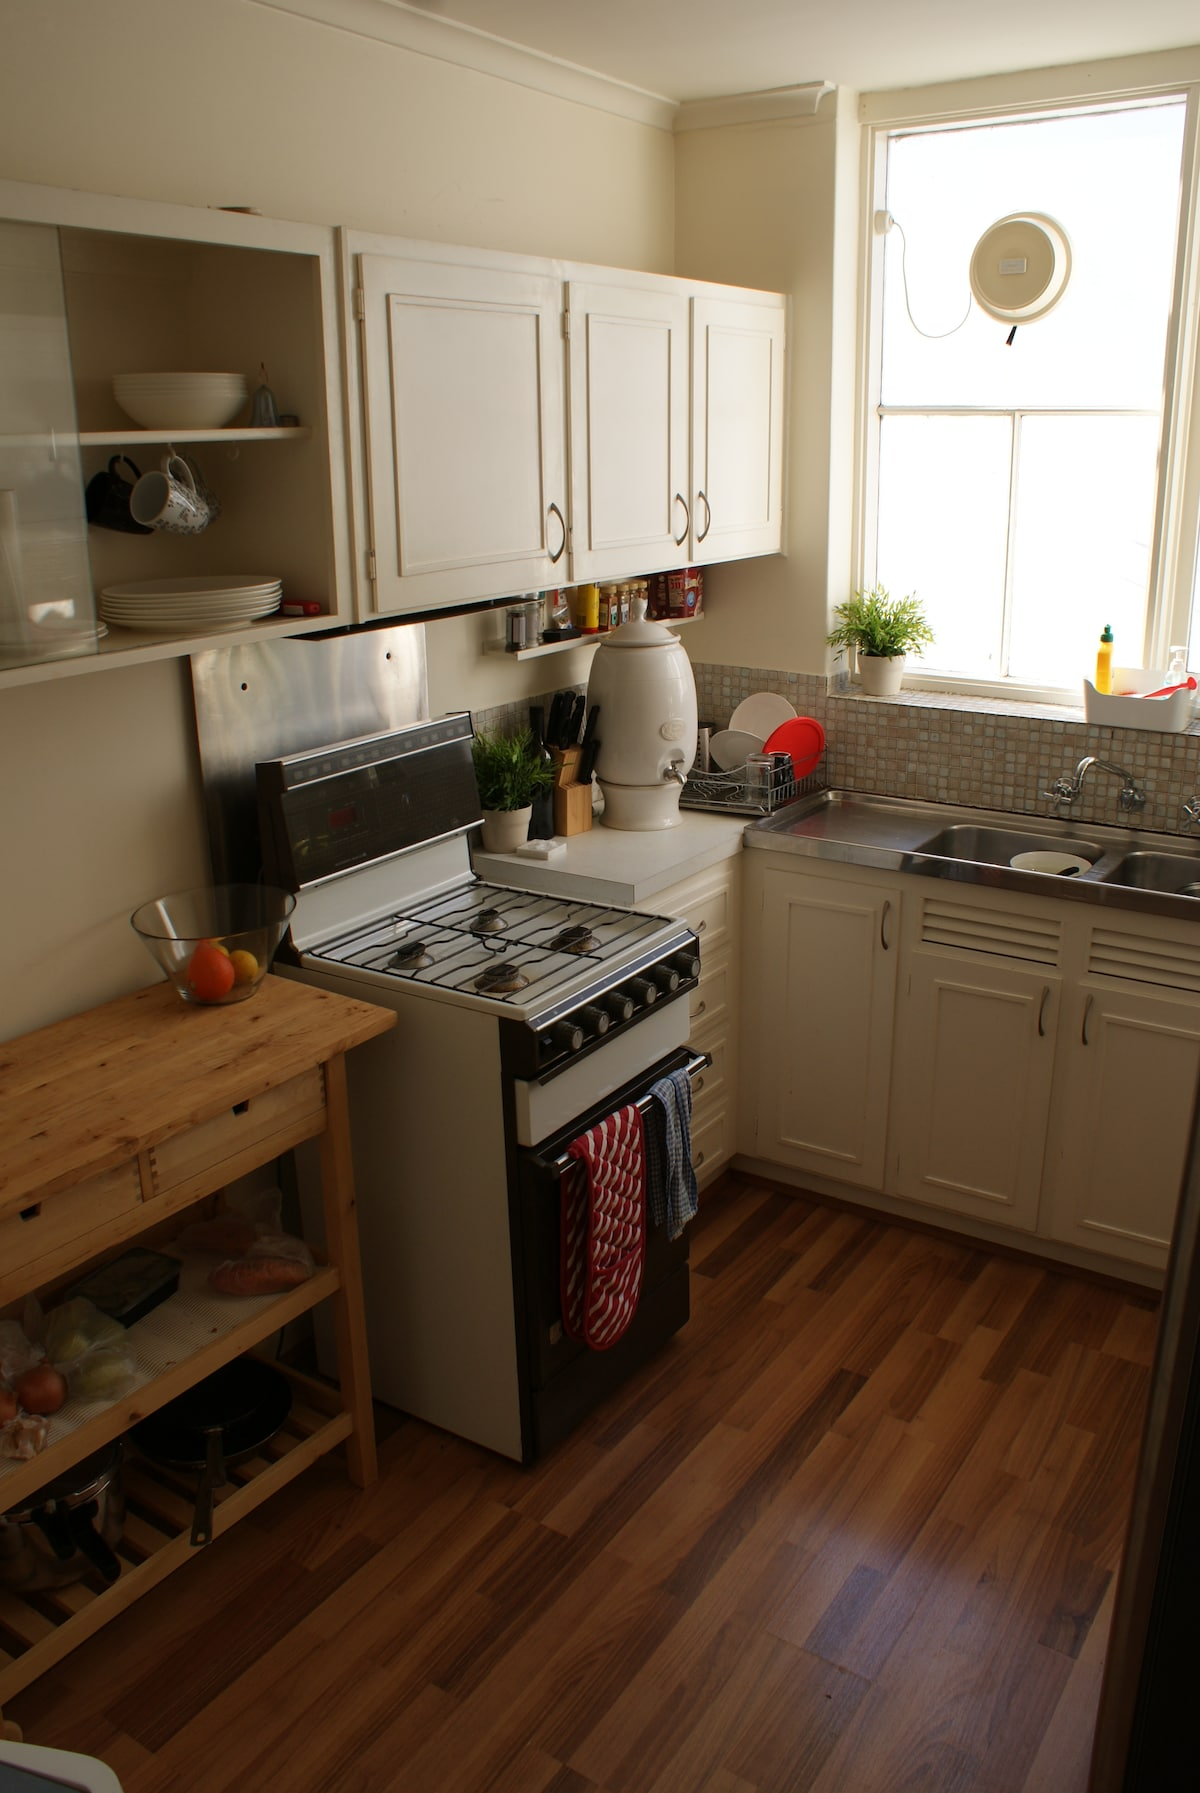 Neat kitchen, gas cooker. Everything you would expect in a kitchen.